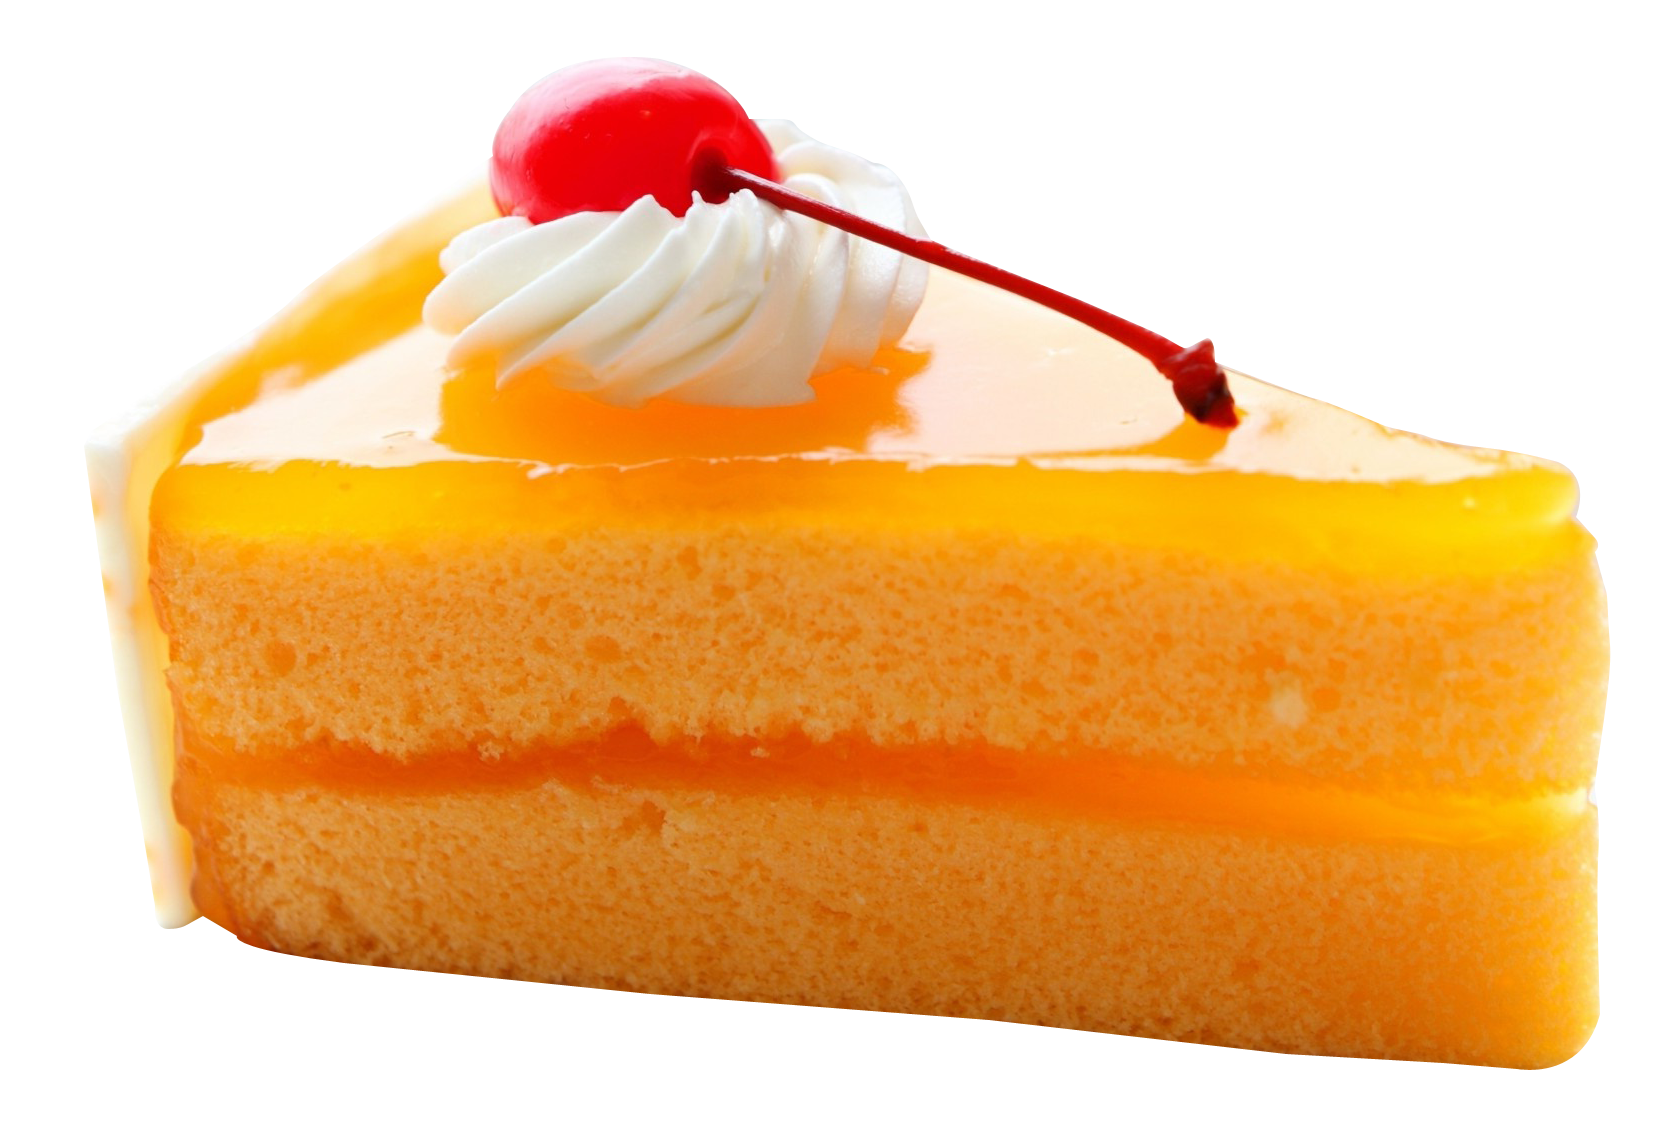 Clipart cake cake slice. Of png hd transparent